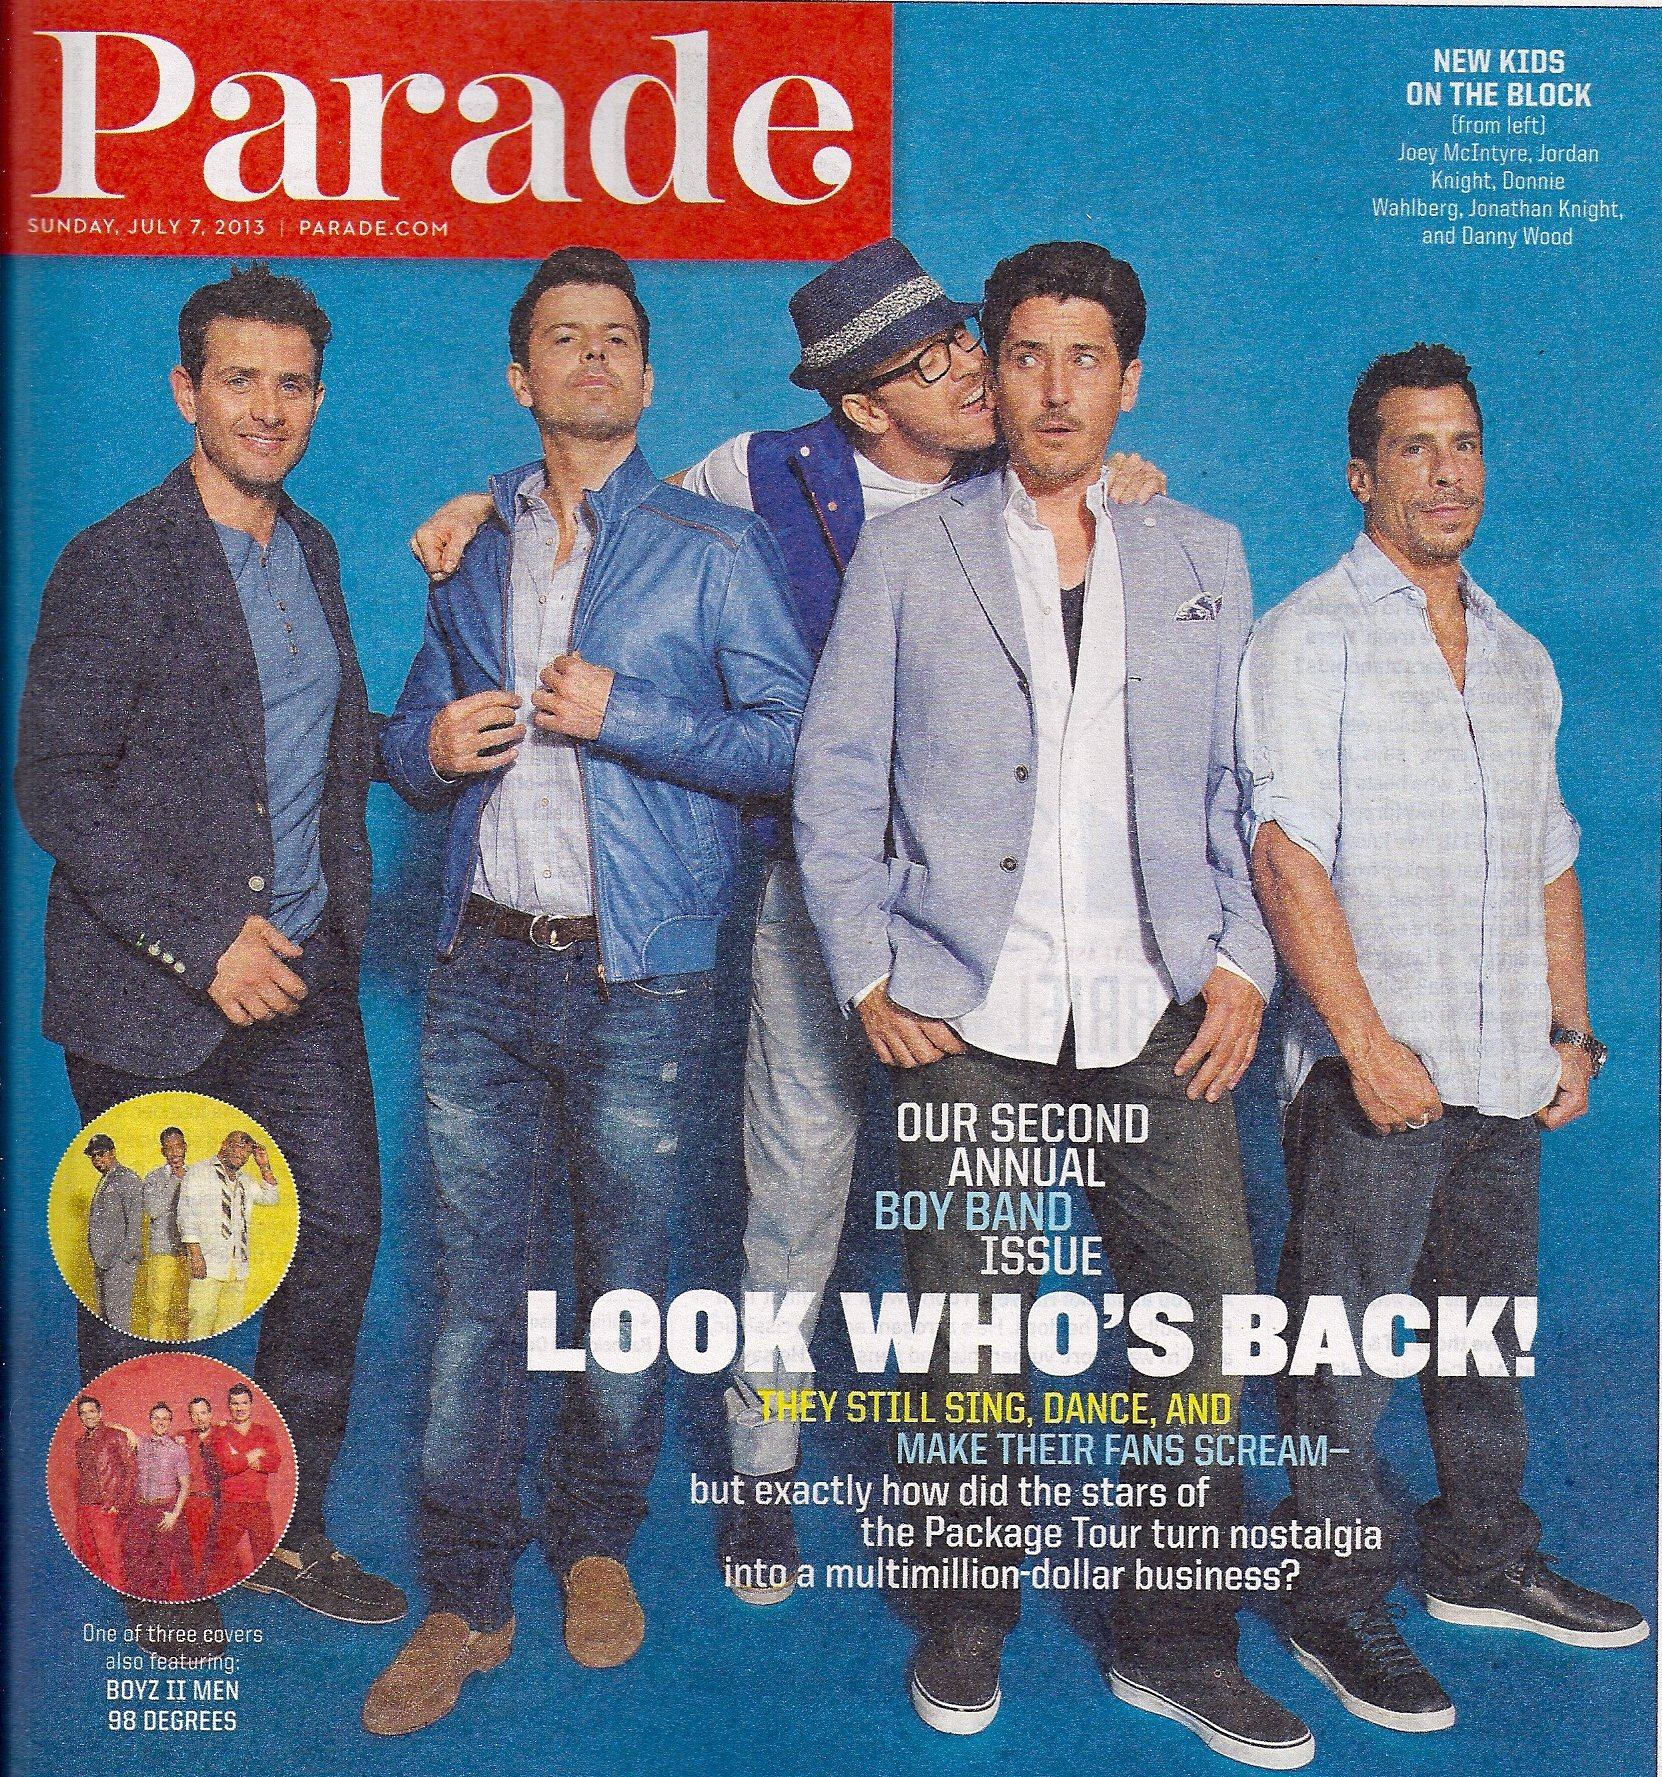 Download New Kids on the Block, Joey McIntyre, Jordan Knight, Second Annual Boy Band Issue, Gabriel Macht - July 7, 2013 Parade Magazine pdf epub